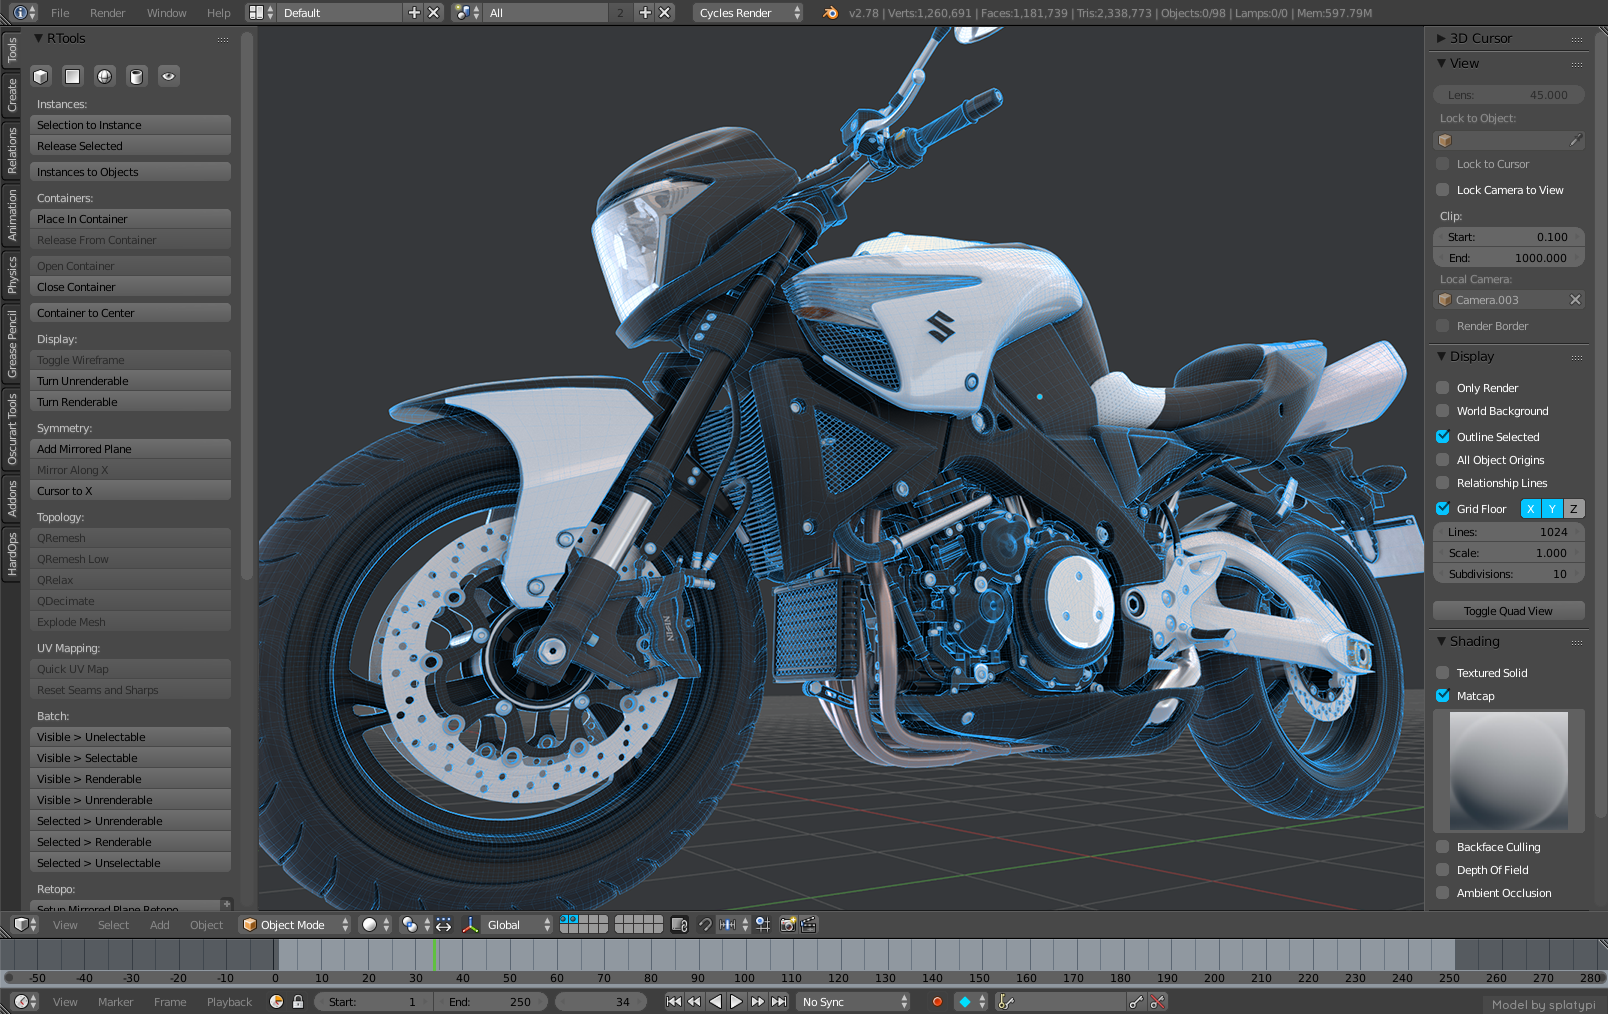 Eevee Roadmap Blender Developers Blog To Start Engine On Stand Wiring 28 Viewport Design Mockup By Pawe Yczkowski Suggesting Fresnel Wires Over A Cycles Preview